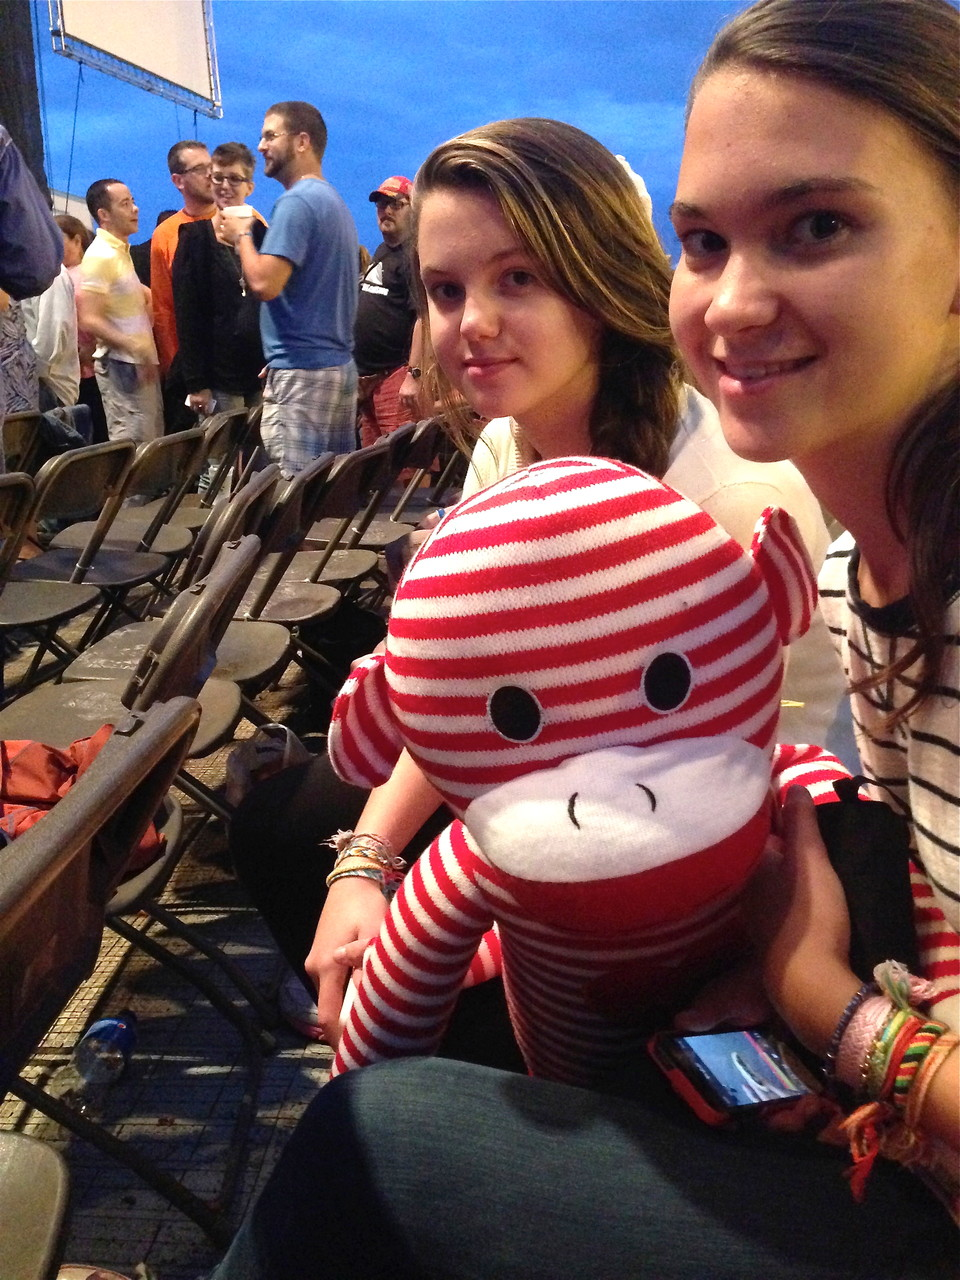 Kate & Ellie at the concert